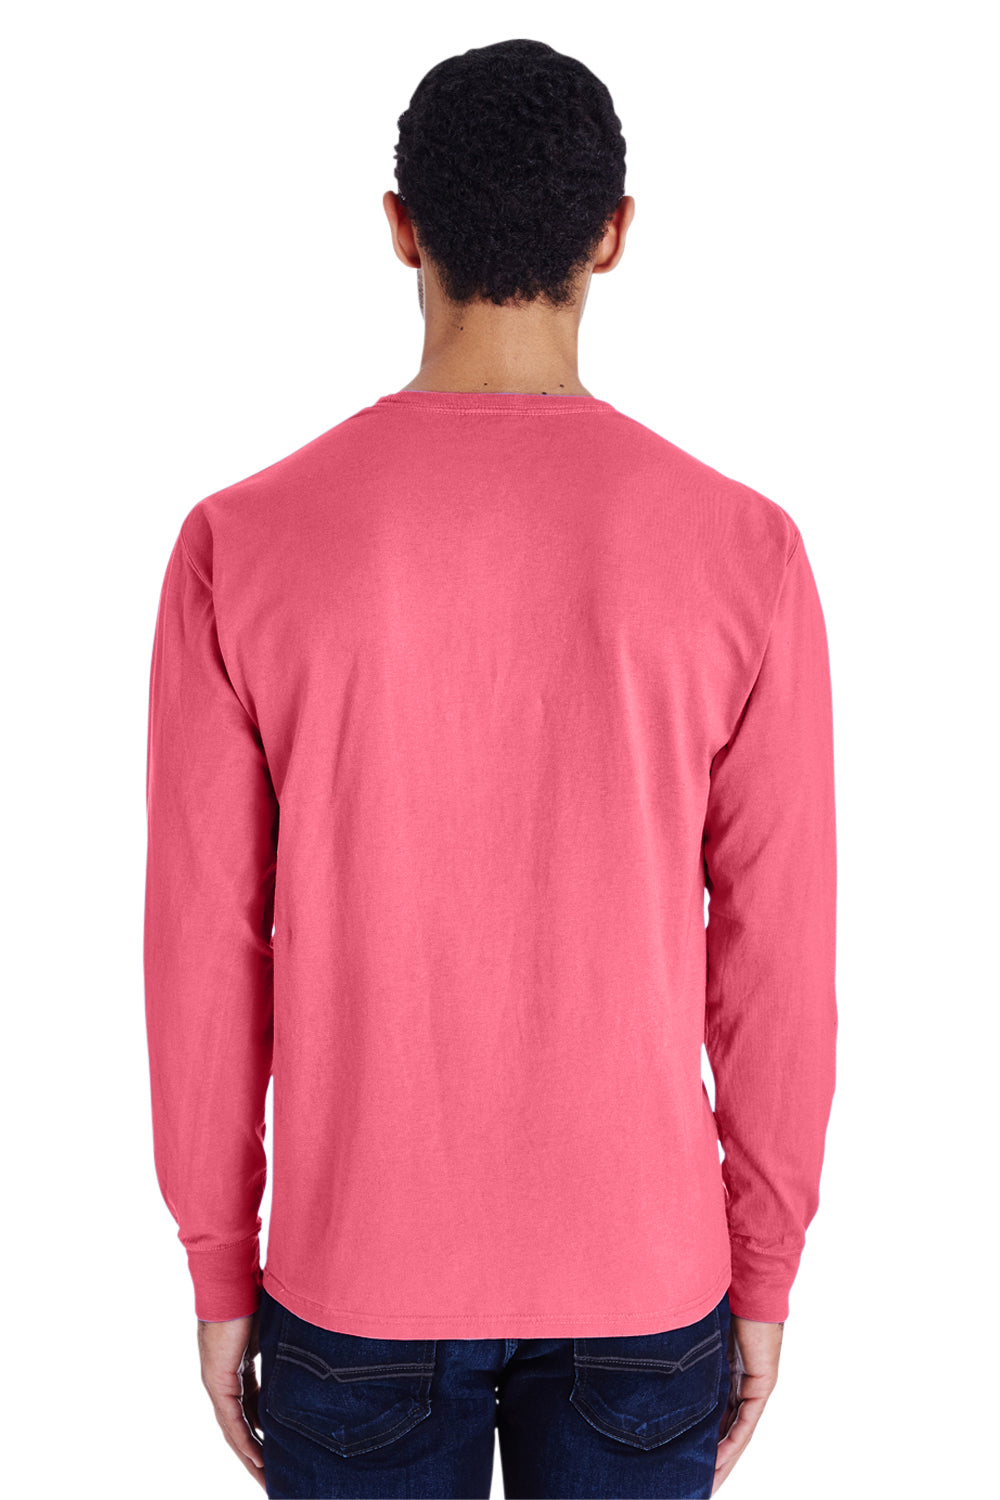 ComfortWash By Hanes GDH200 Mens Long Sleeve Crewneck T-Shirt Crimson Red Back